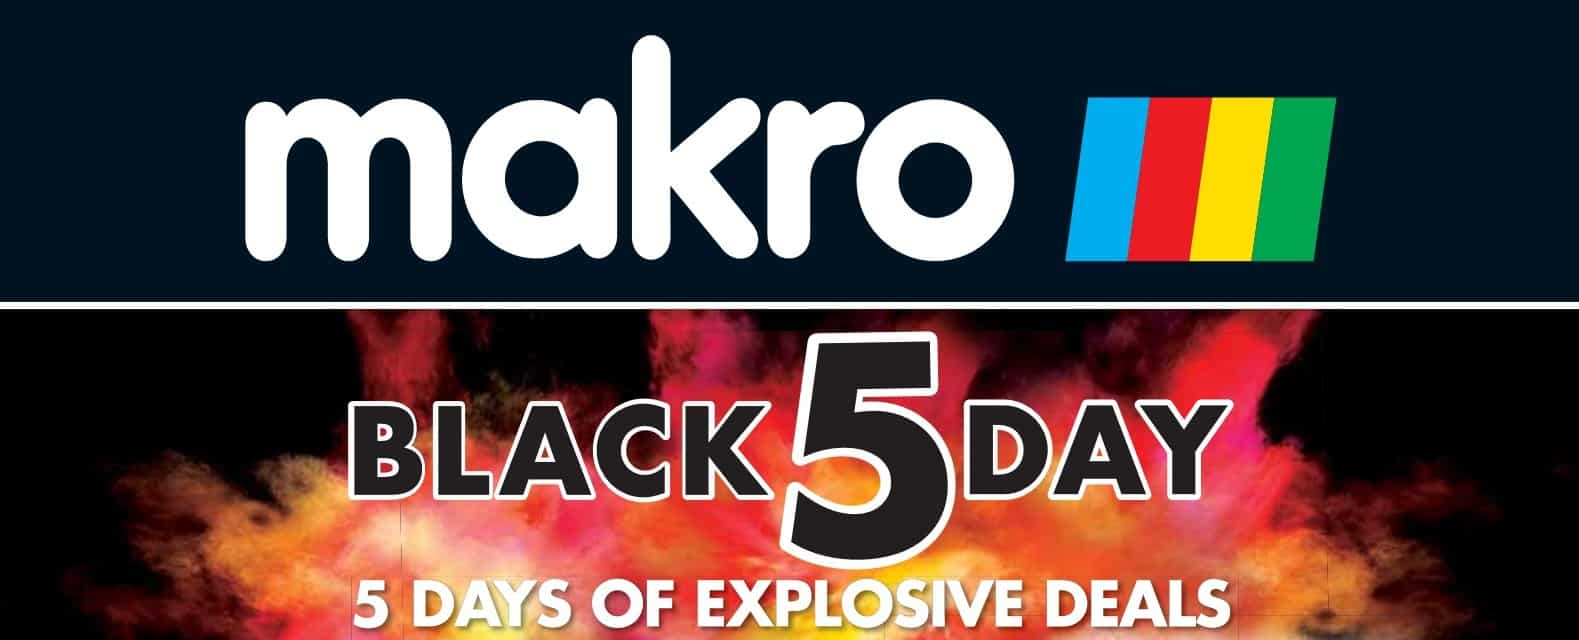 Makro Black Friday 2019 sale deals for gamers